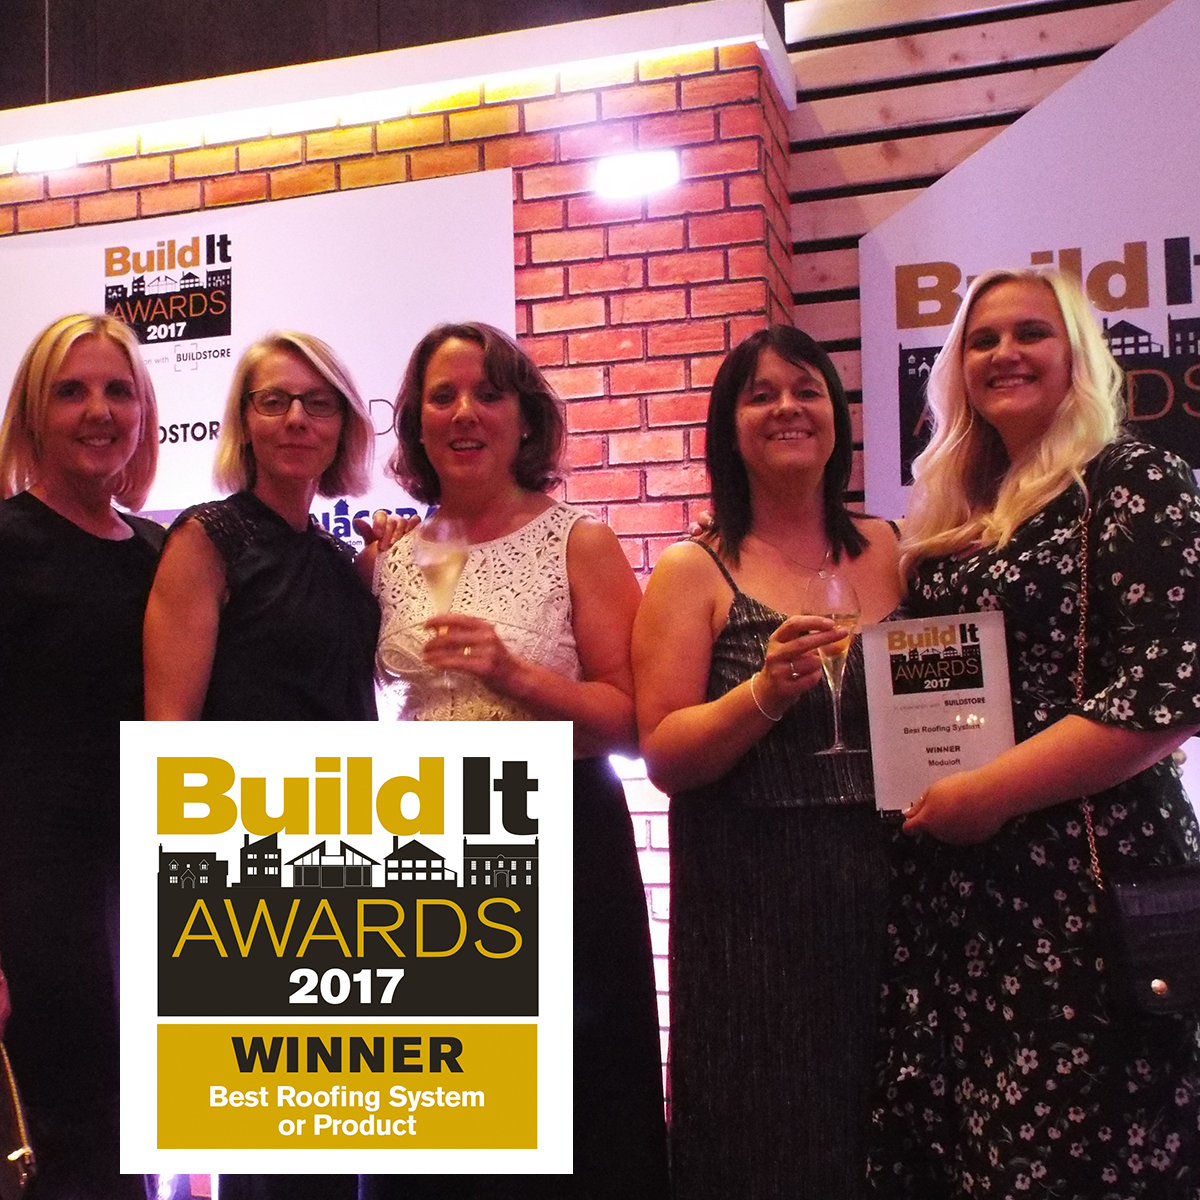 loft conversion awards win: Build It awards Winner for best roofing system